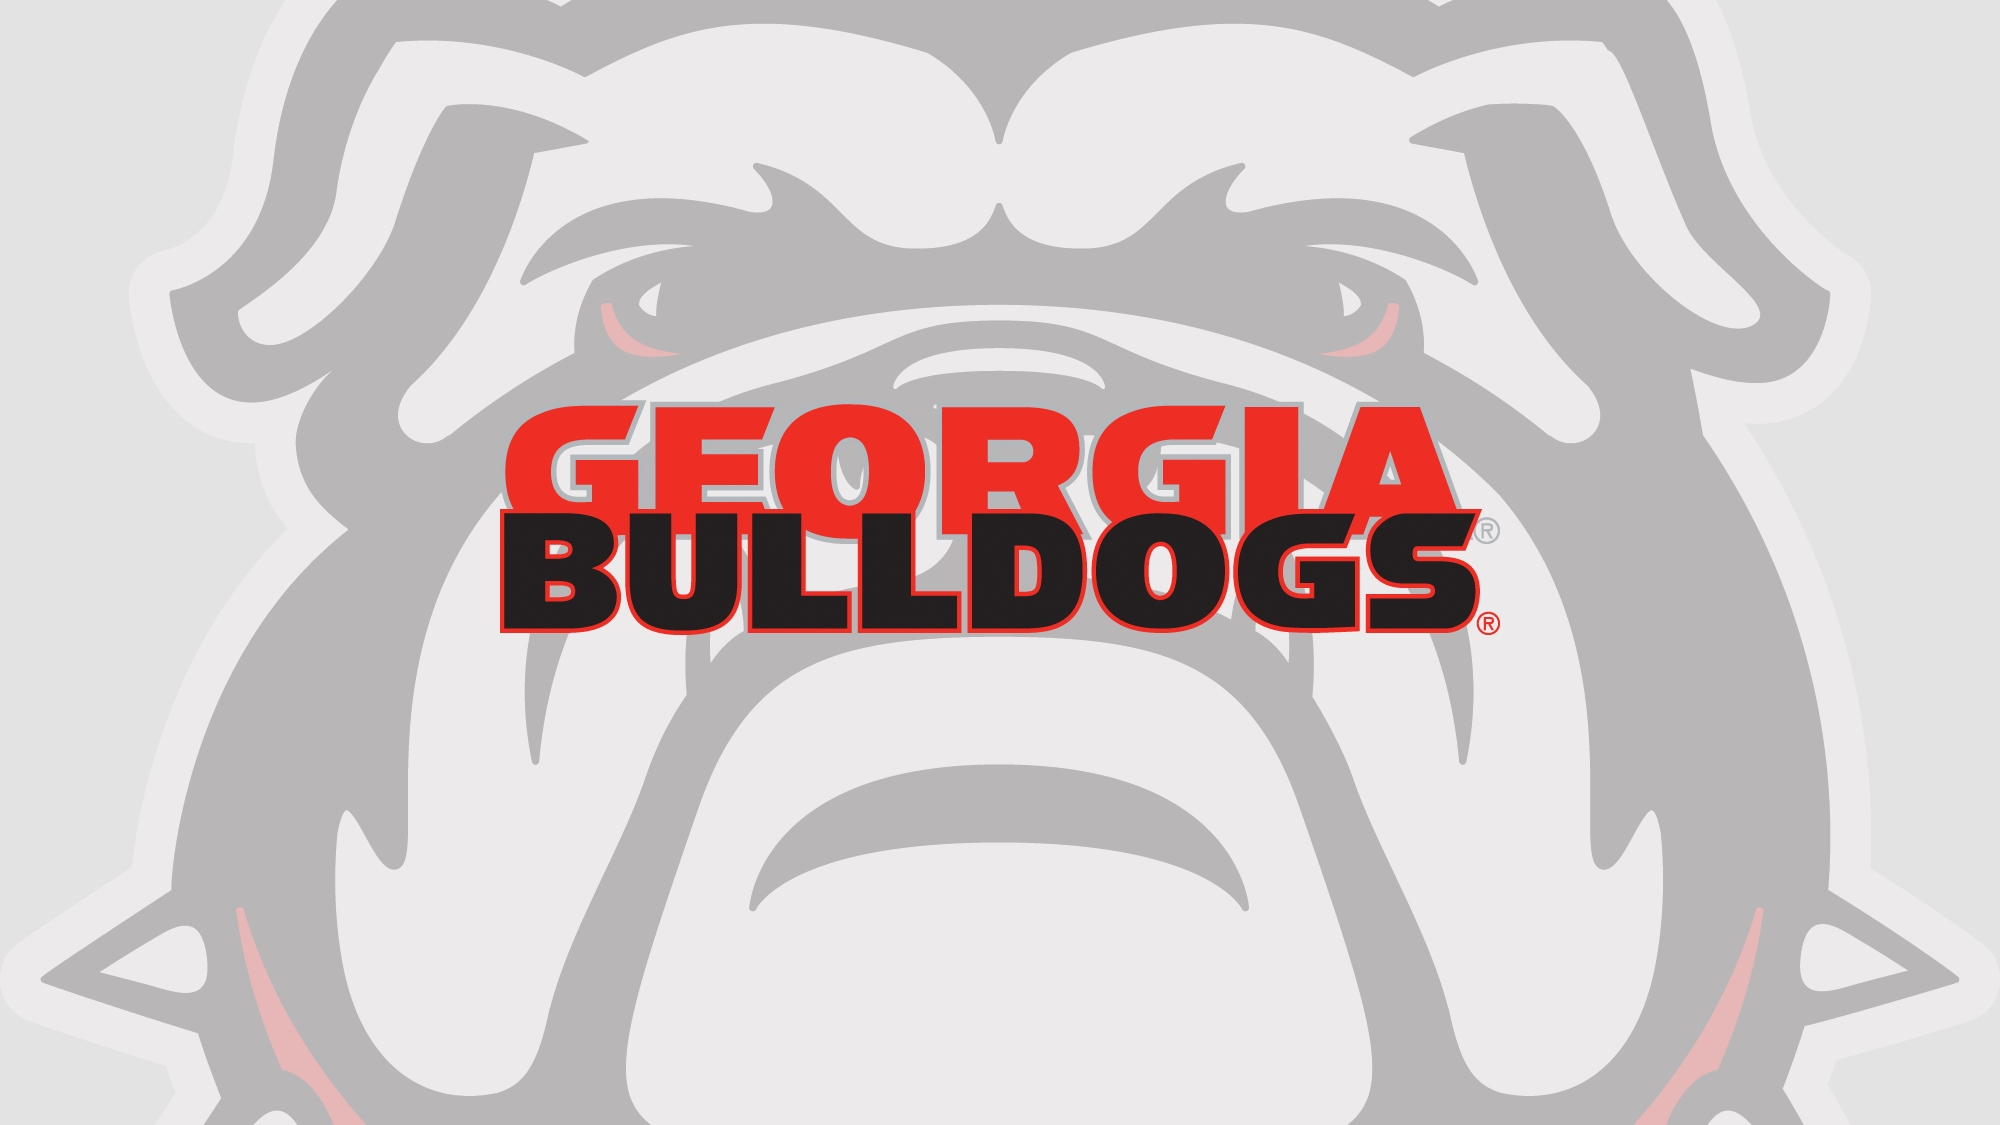 Uga Academic Schedule For 2019 2020  Calendar Inspiration throughout Uga Academic Calendar 2020